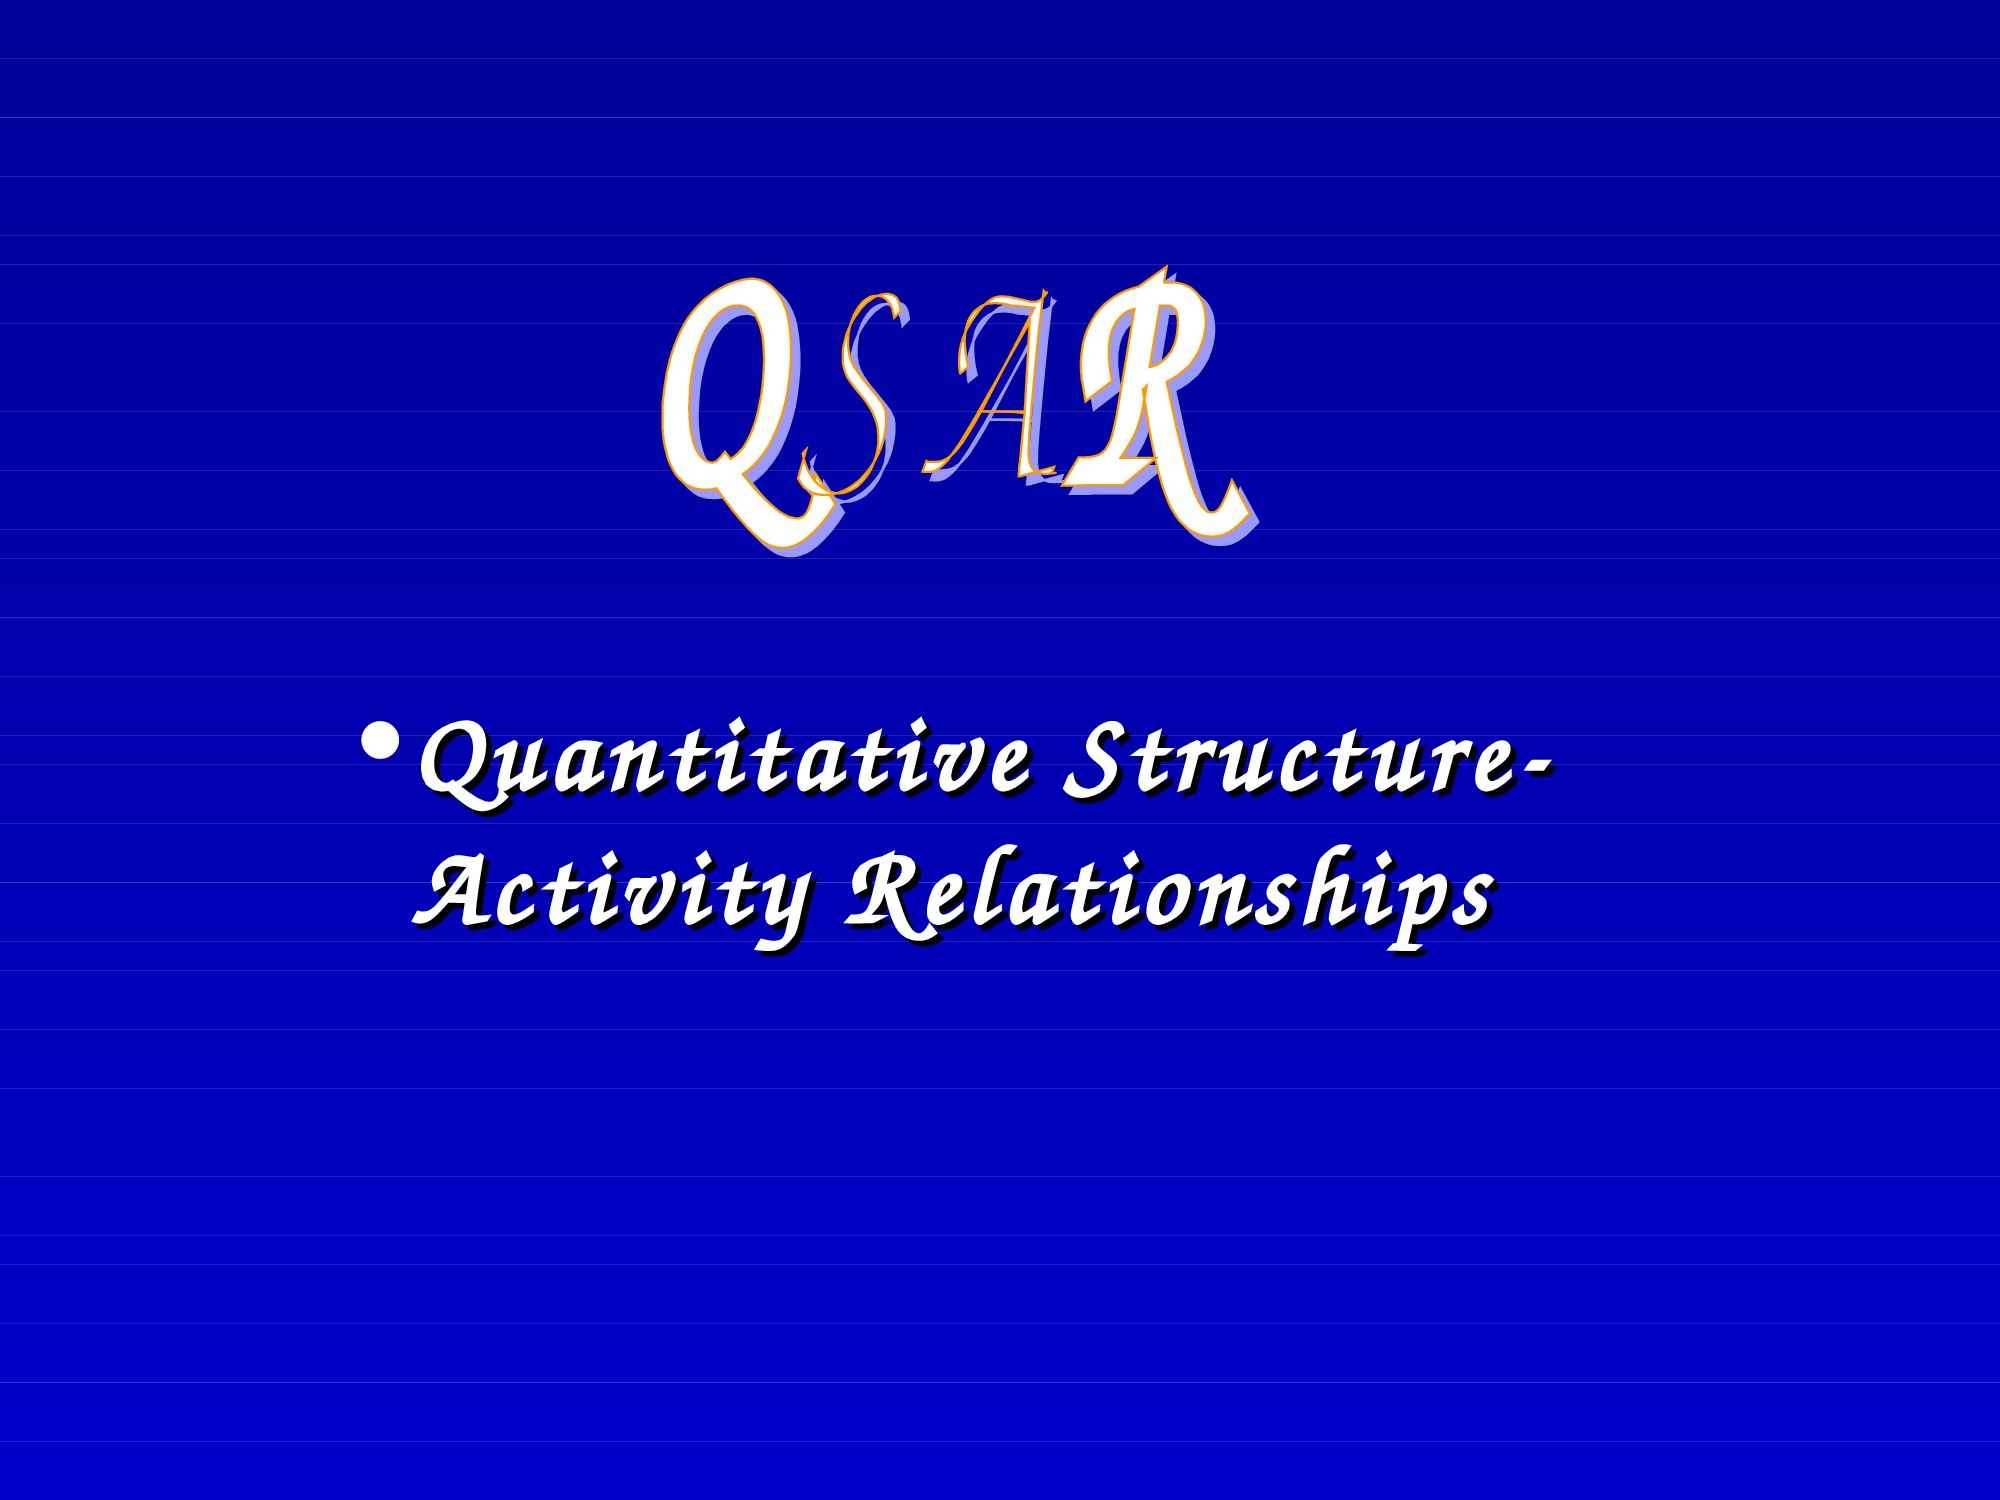 QSAR - Quantitative Structure-Activity Relationships